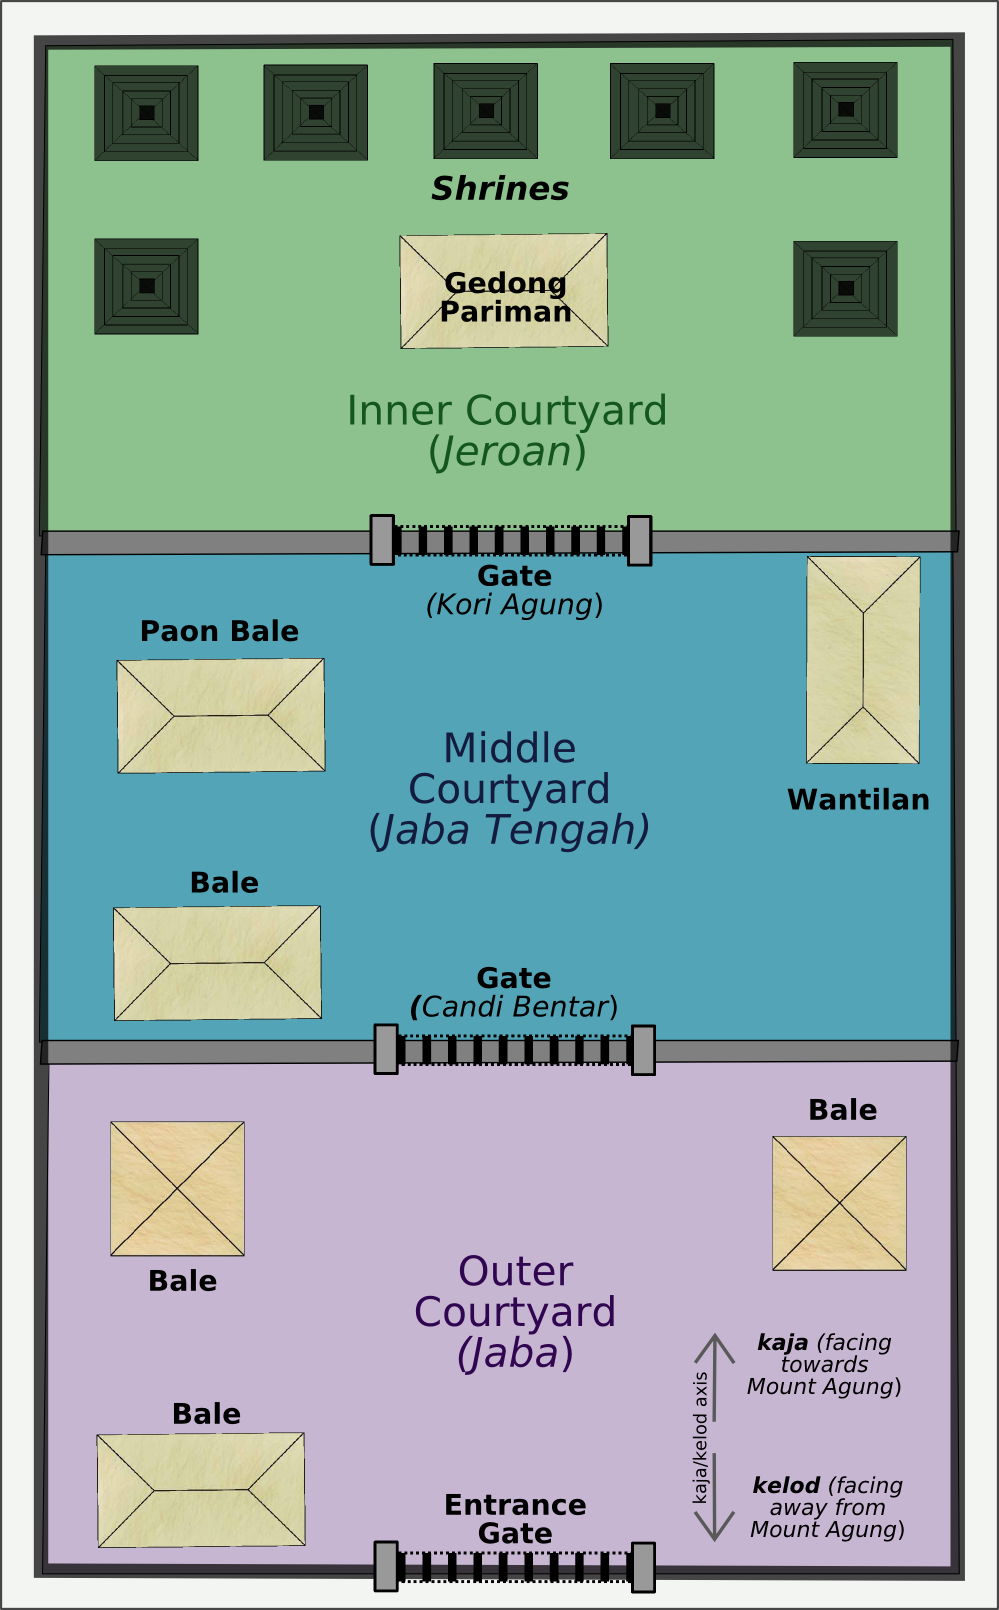 File:Bali temple diagram.png - Wikimedia Commons